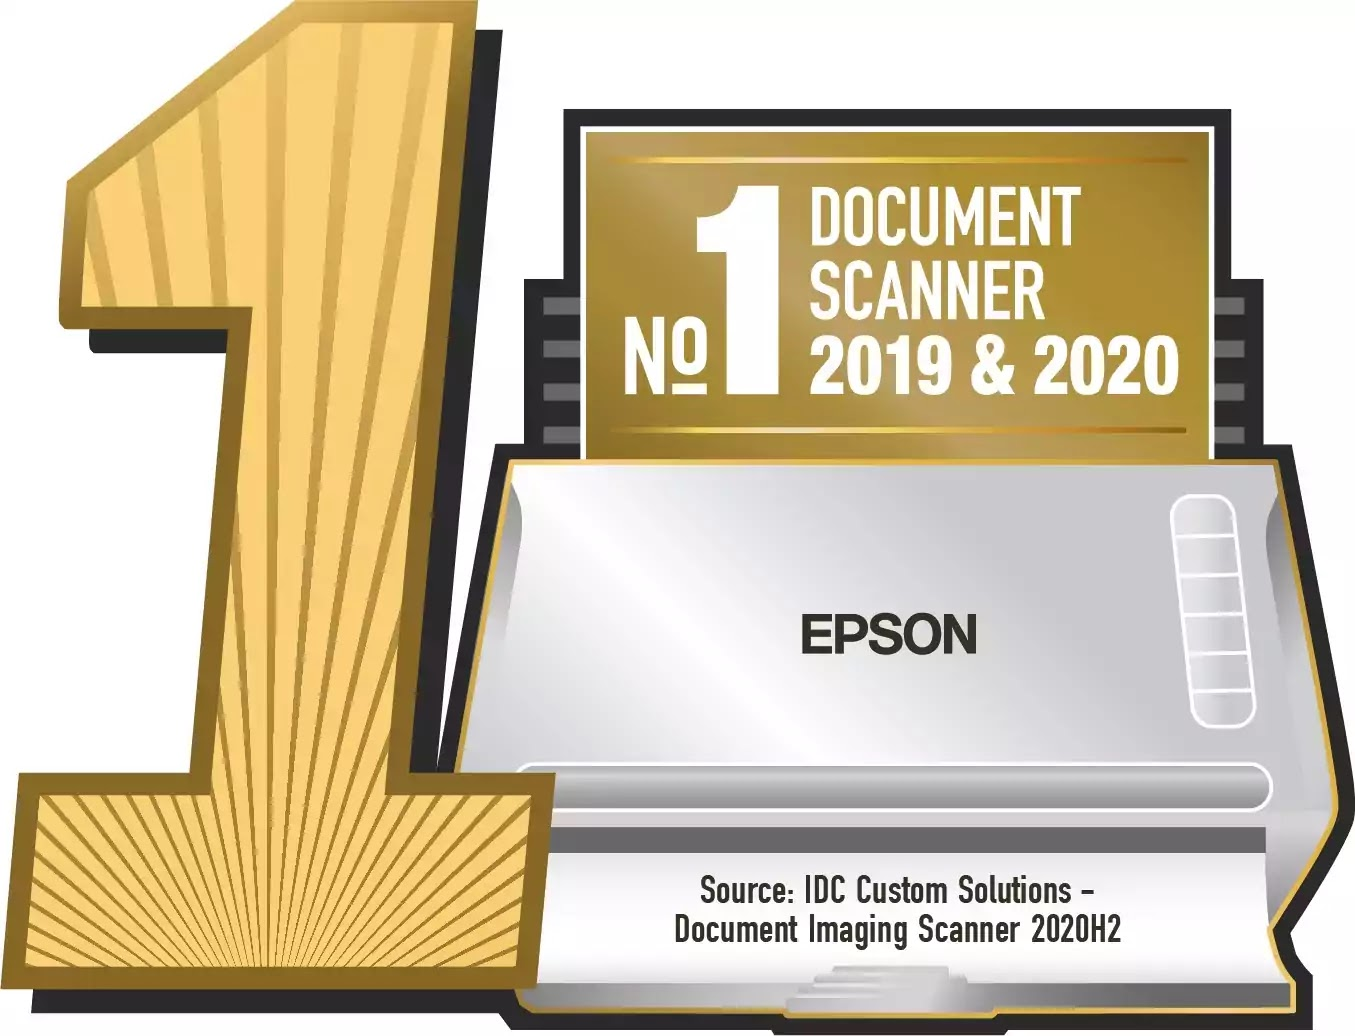 Number 1 Seal for Scanners 2019-2020